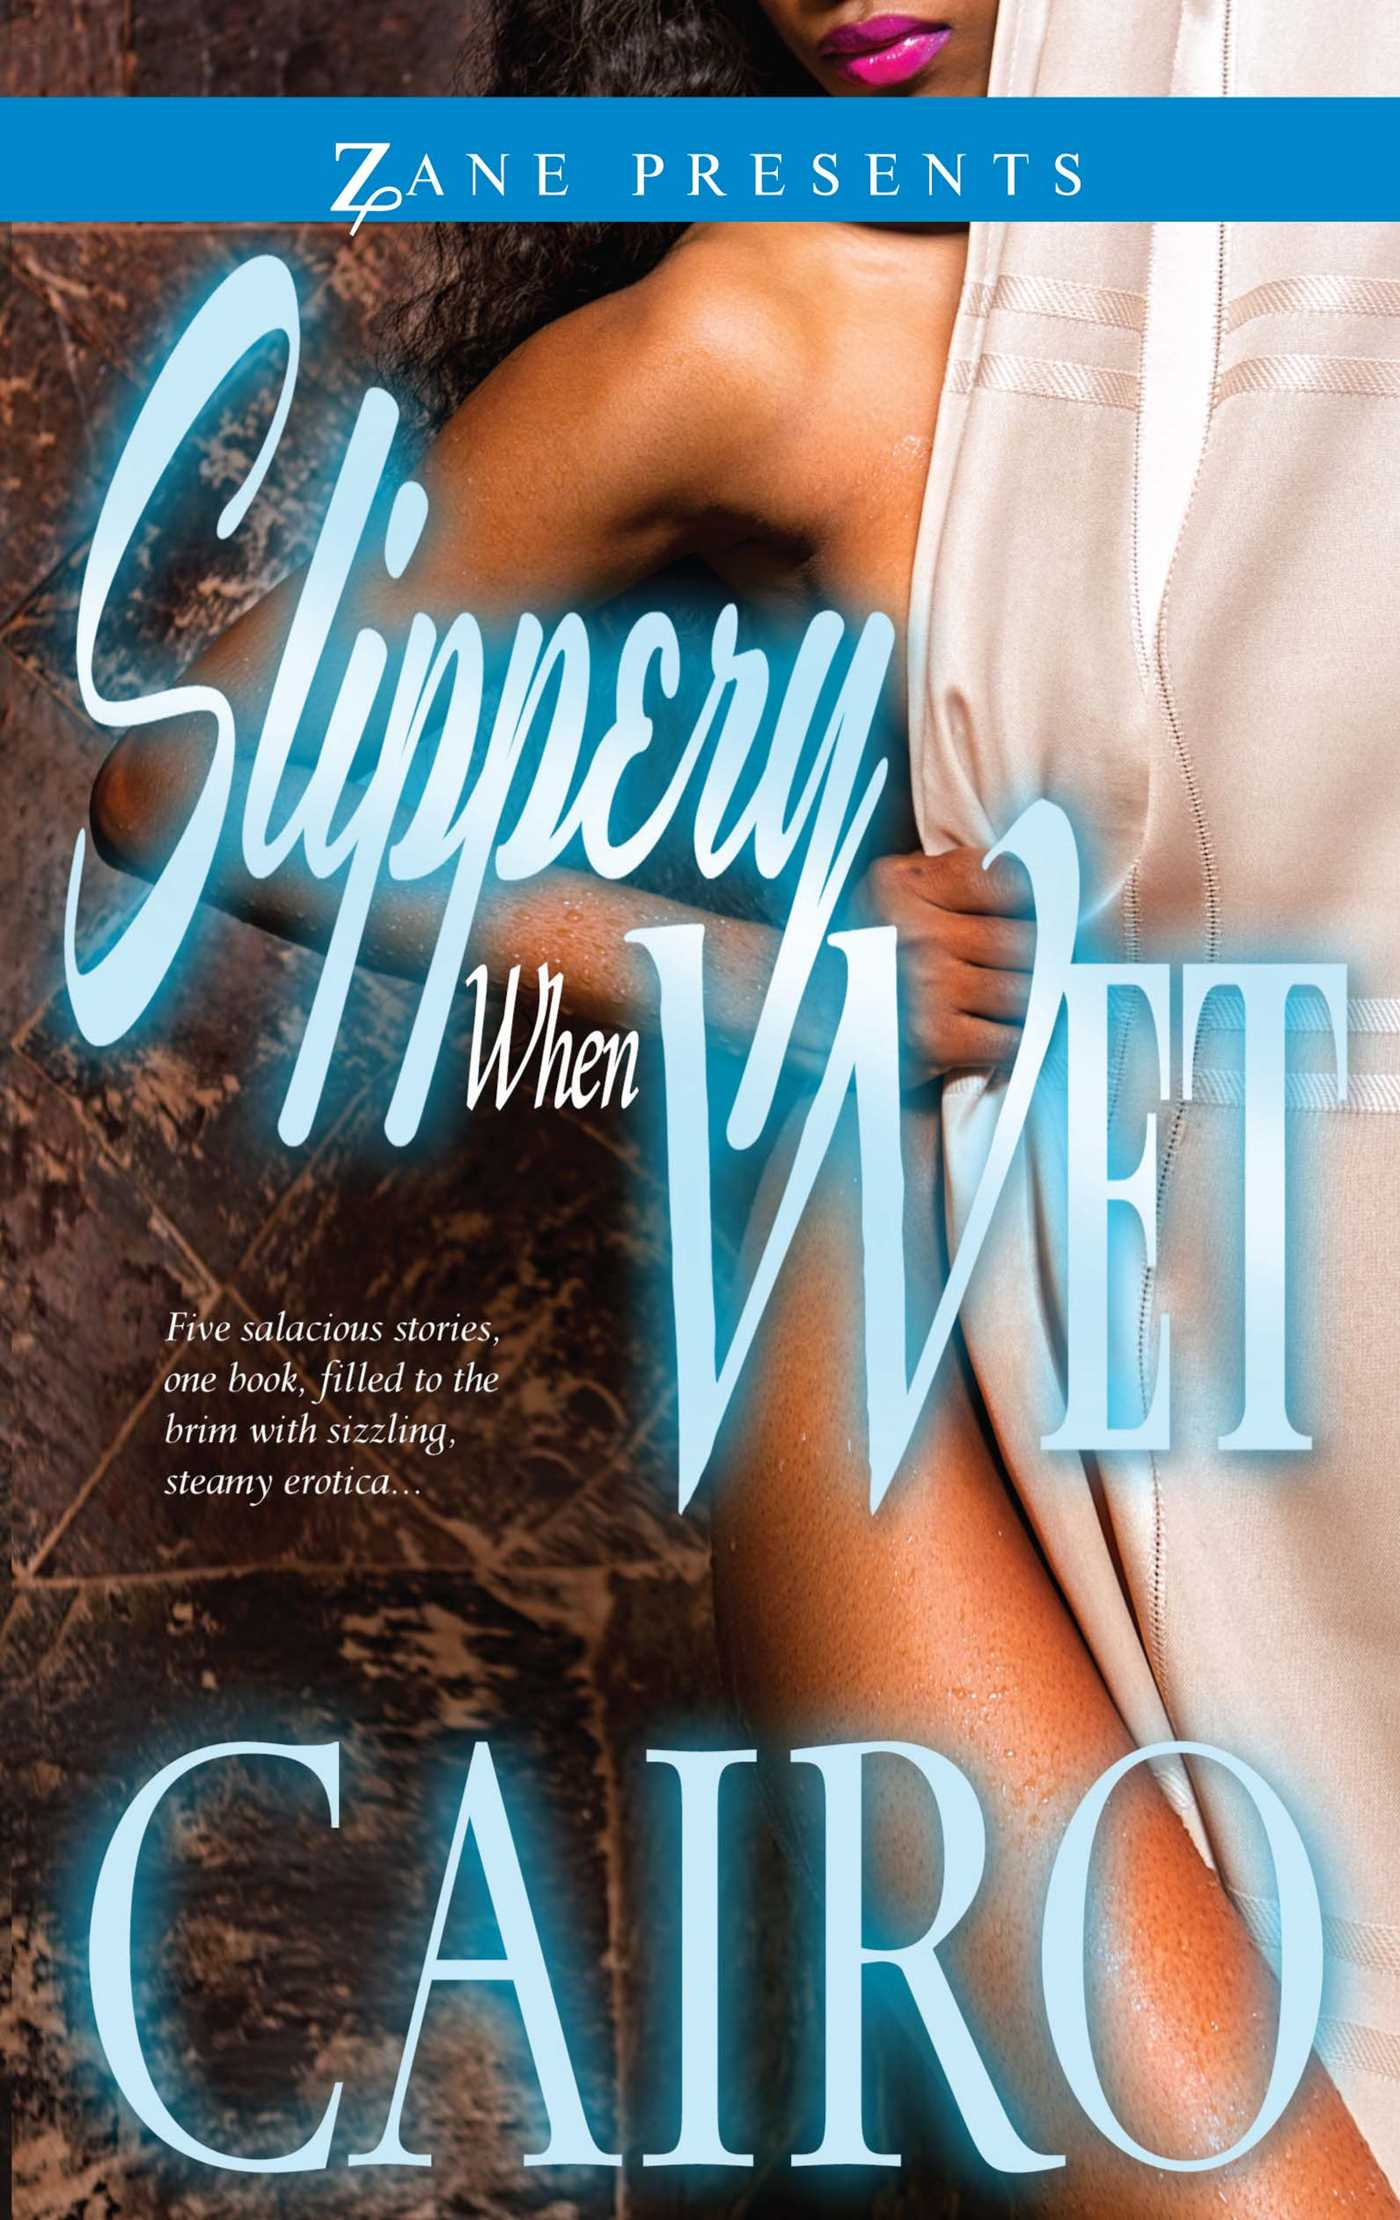 Slippery-when-wet-9781593094355_hr